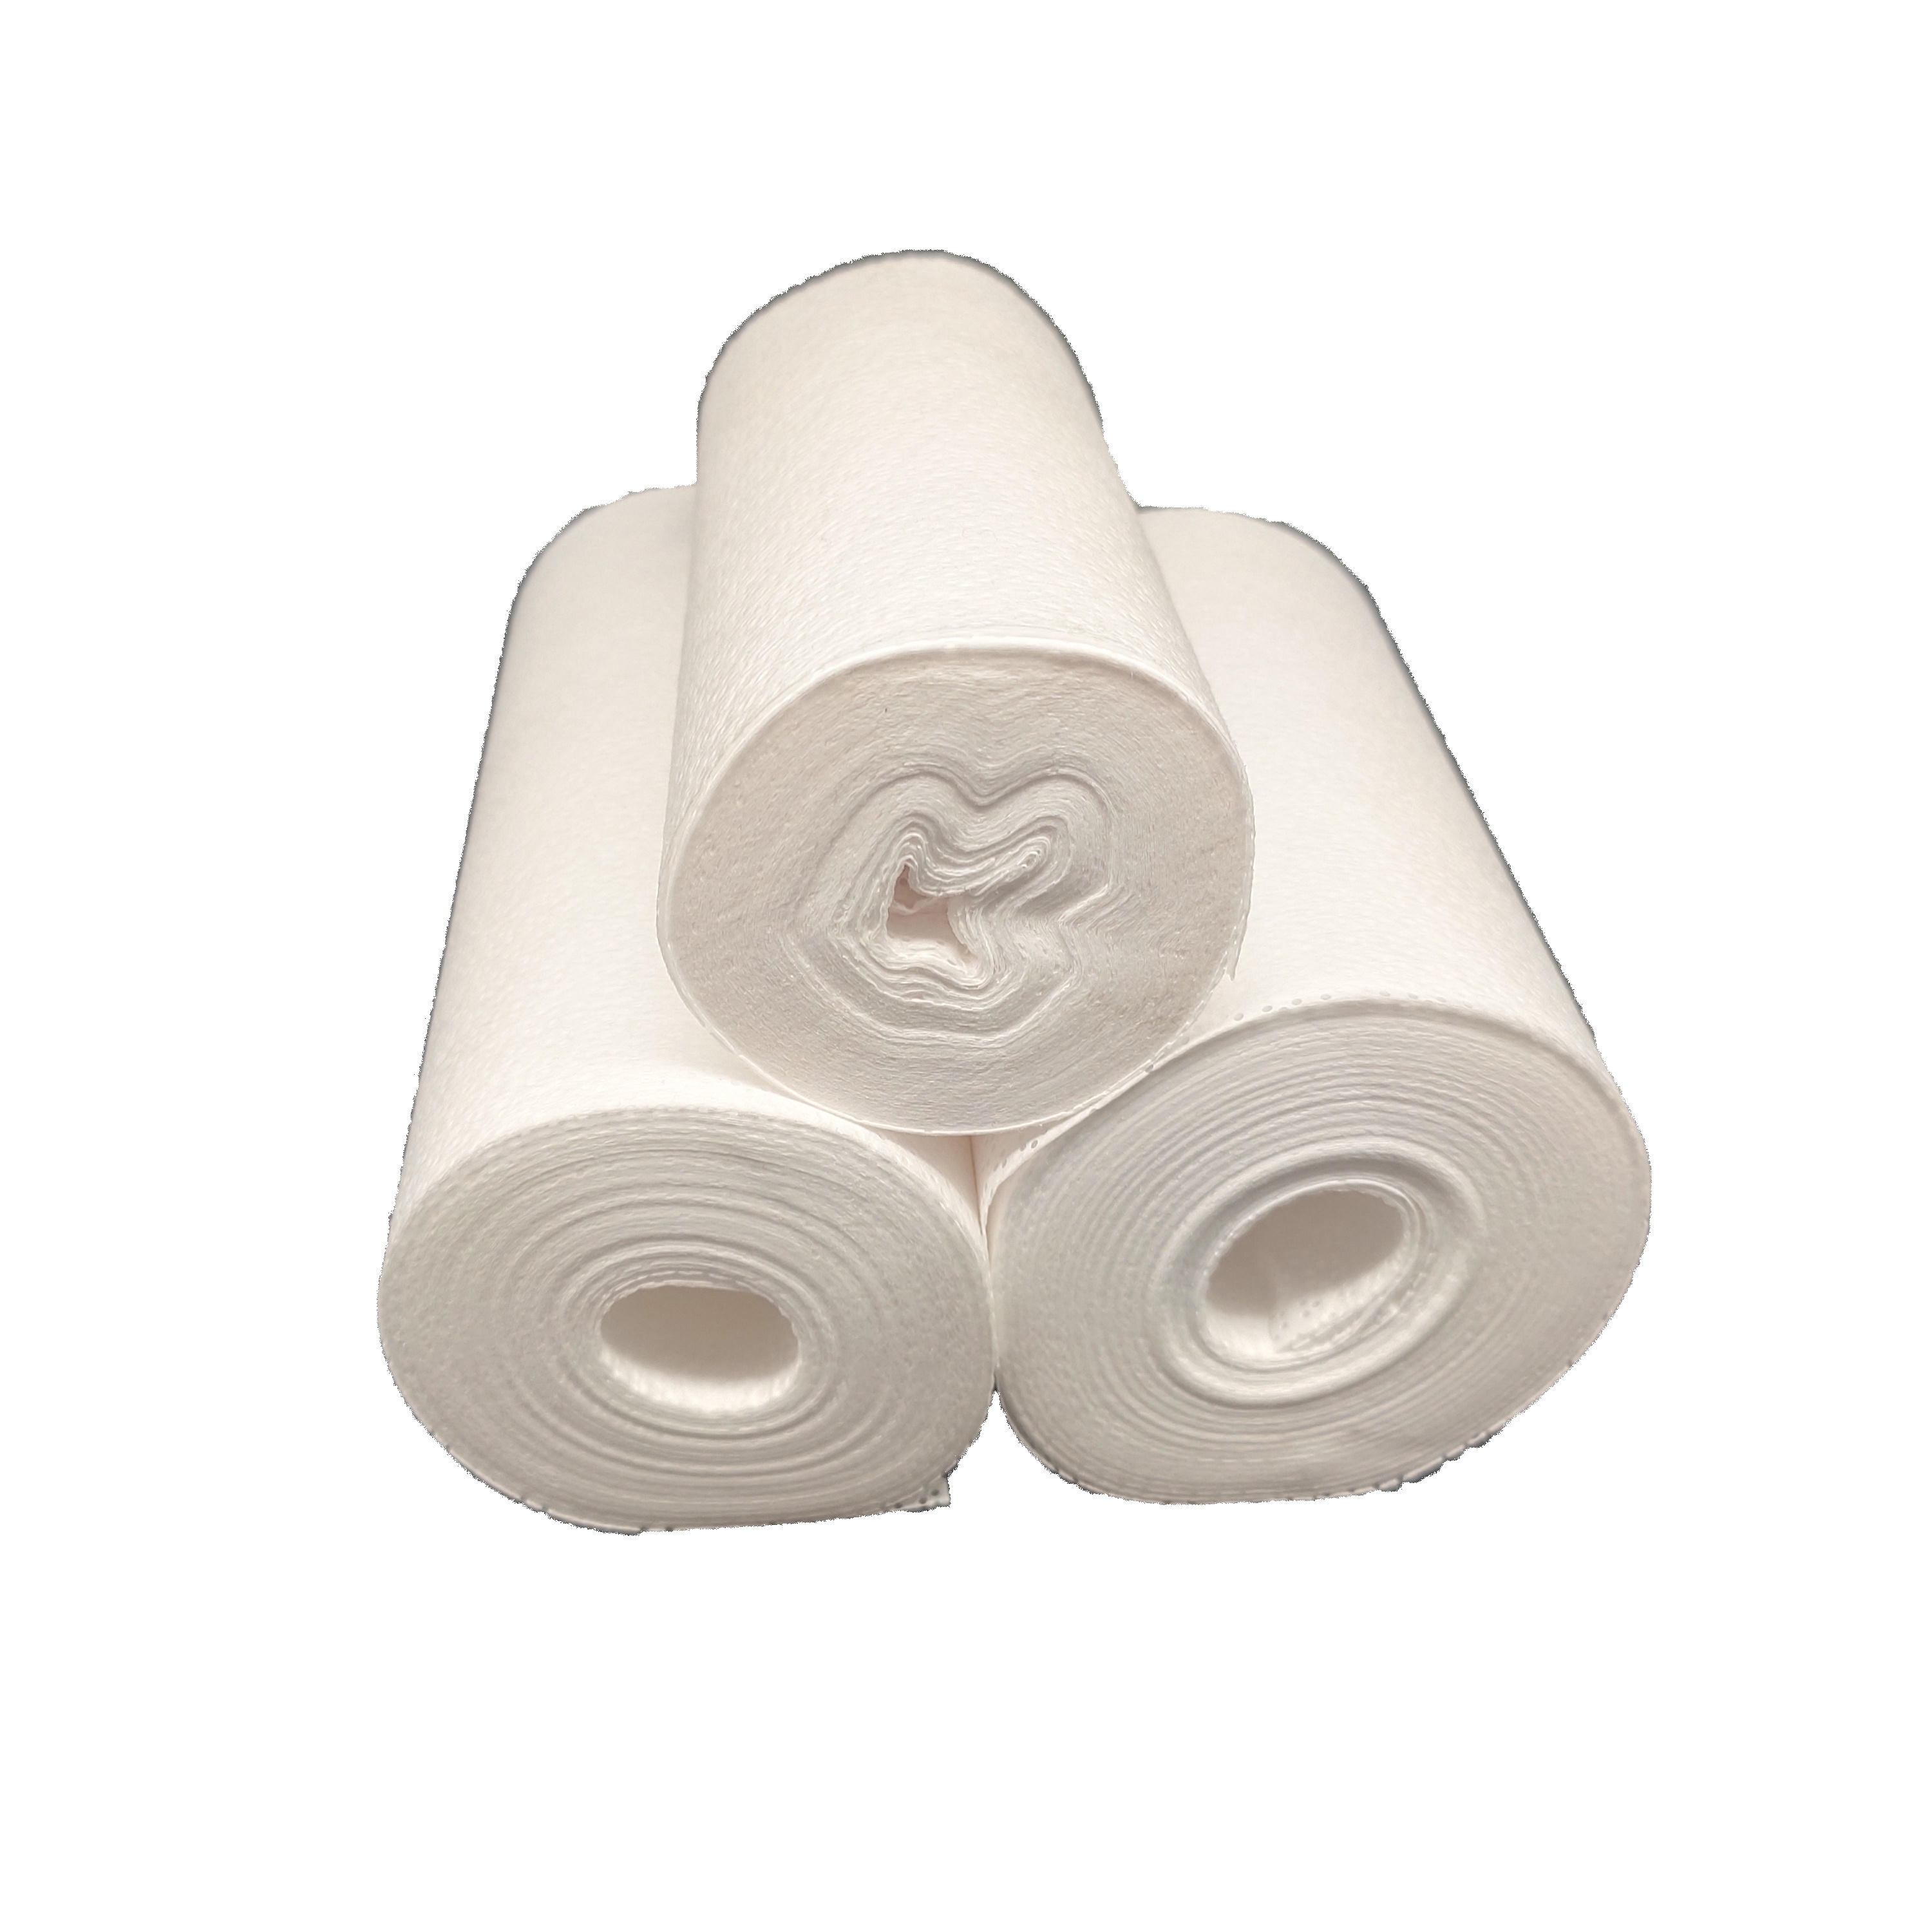 Bags Mash Fabric Material Meltblown Nonwoven For Wet Wipe